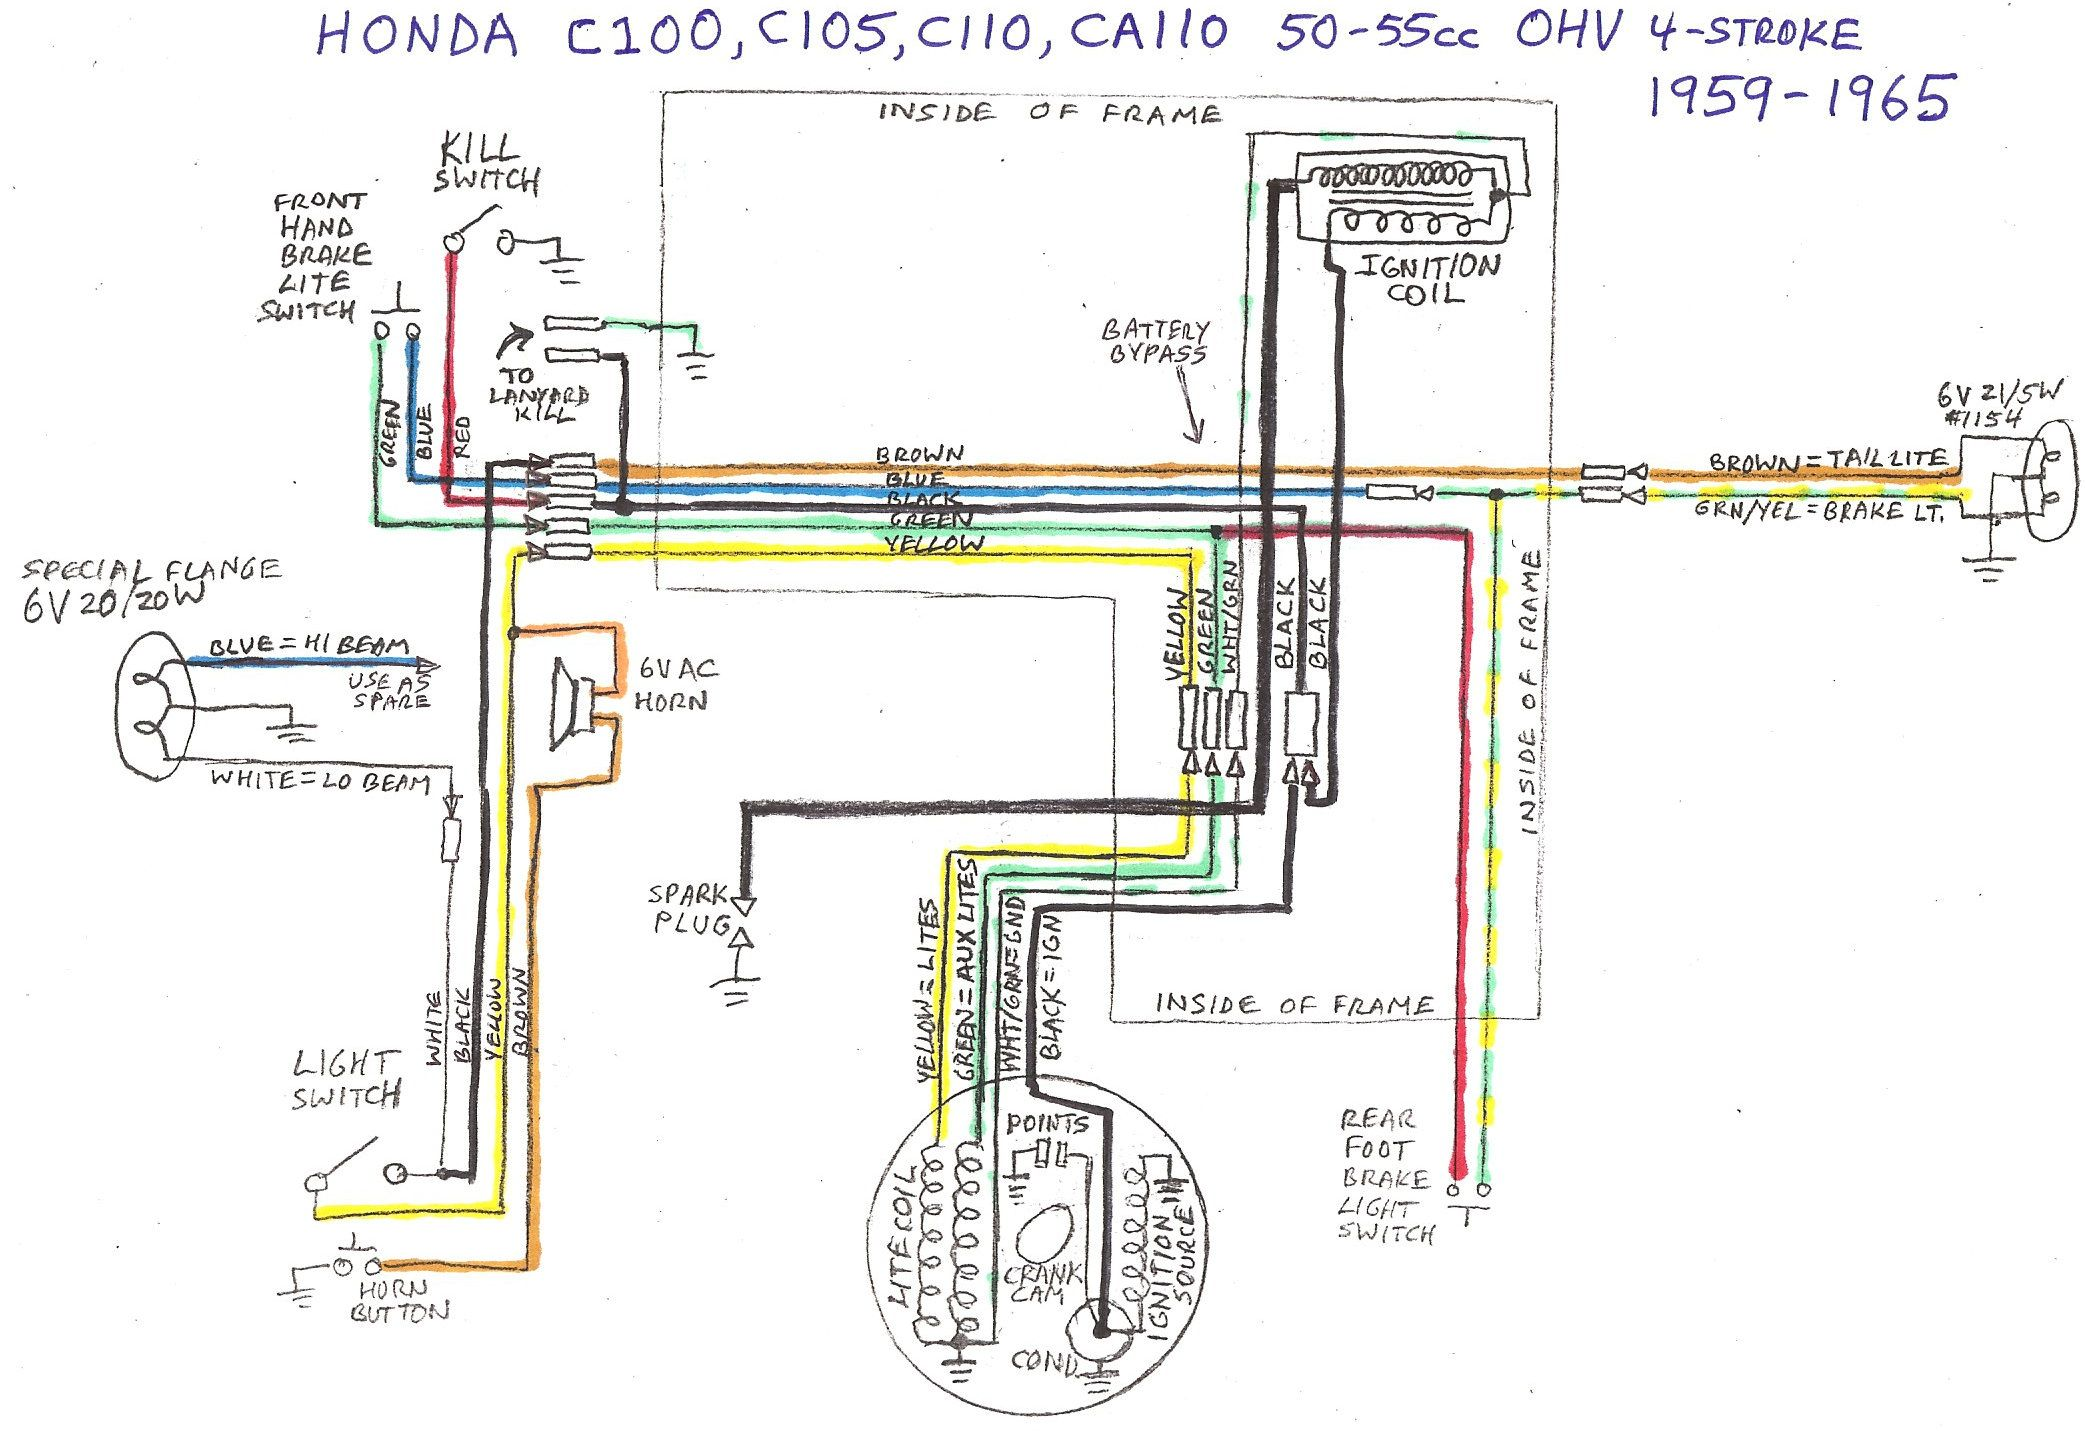 honda 70cc wiring wiring diagram honda 70cc pit bike honda circuit diagrams wiring diagram center mix [ 2085 x 1431 Pixel ]